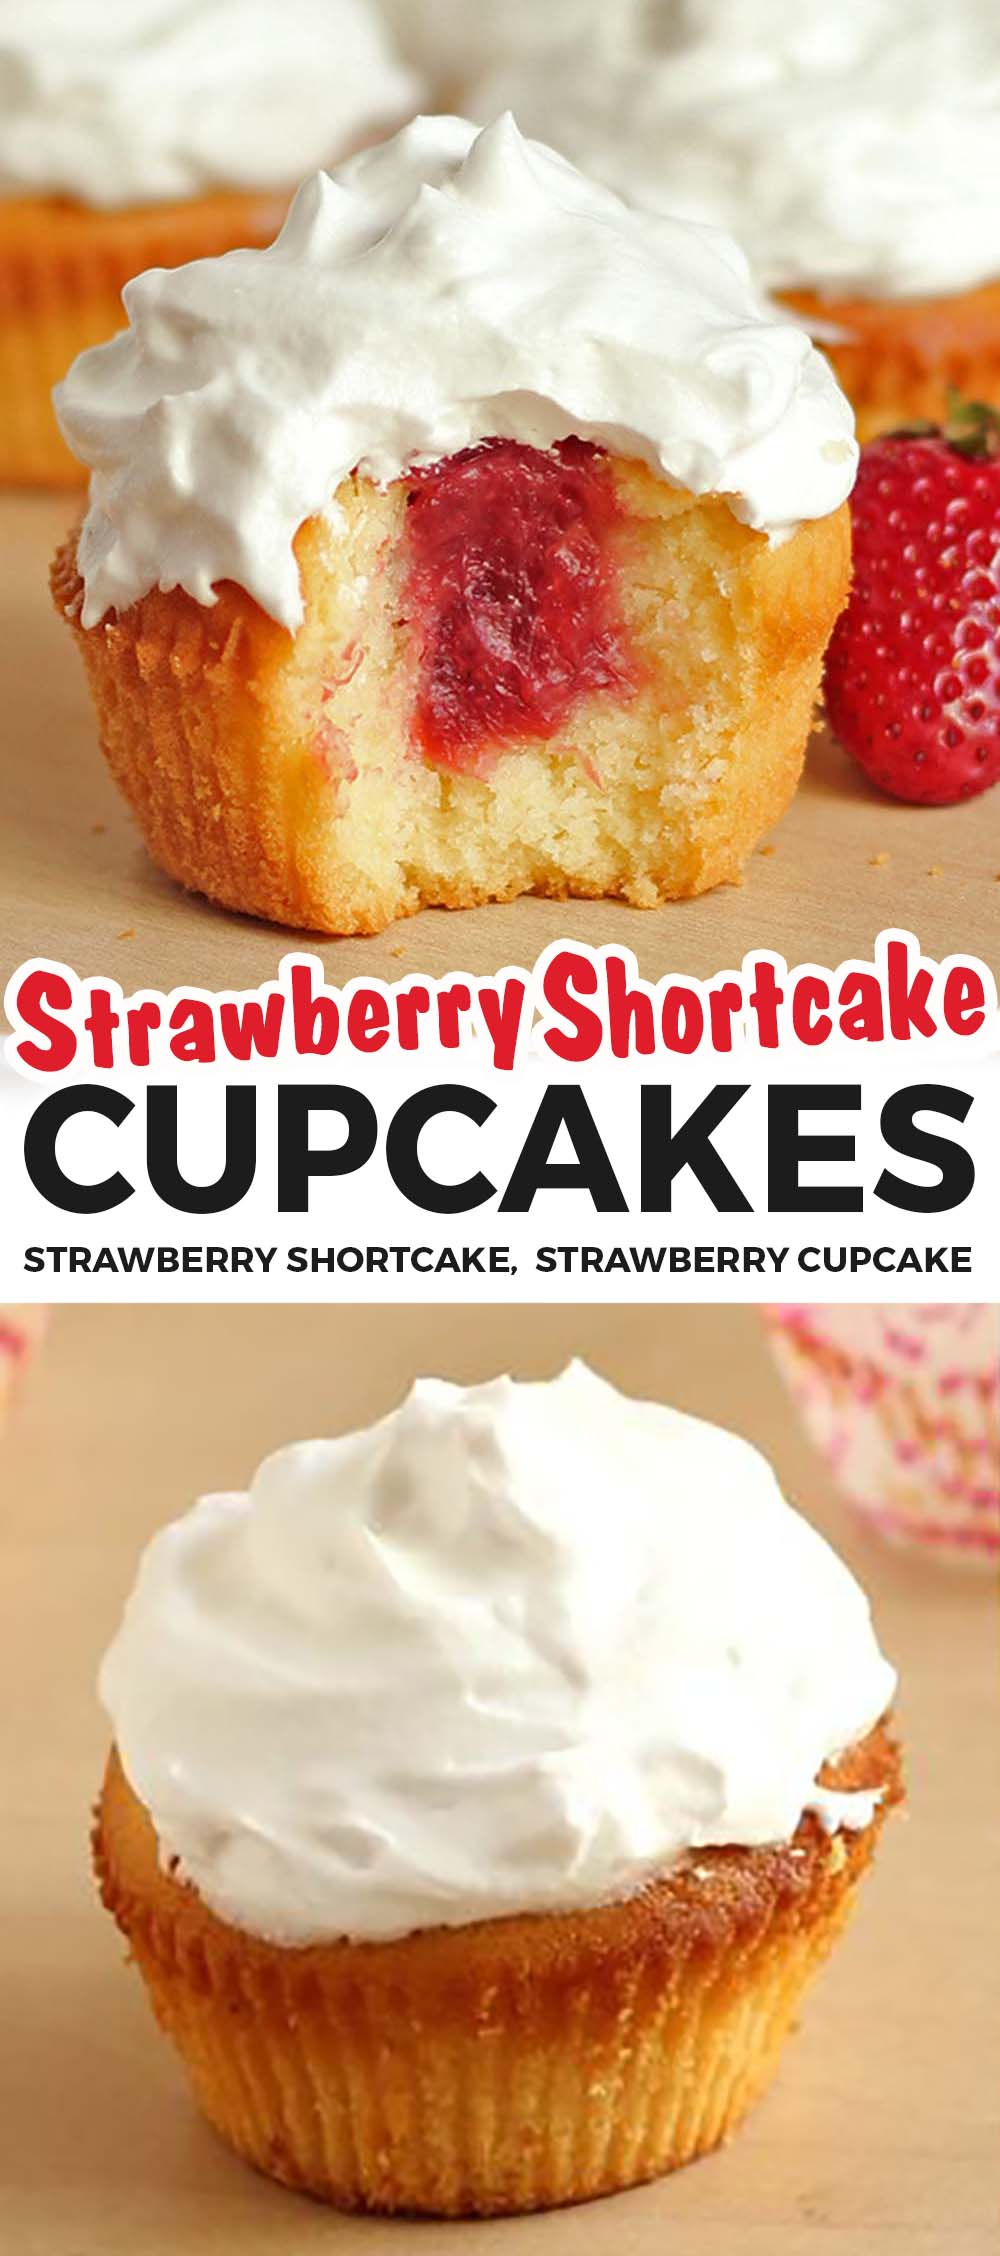 These strawberry shortcake cupcakes are fluffy, moist and very-vanilla with pockets of strawberry jam inside each bite